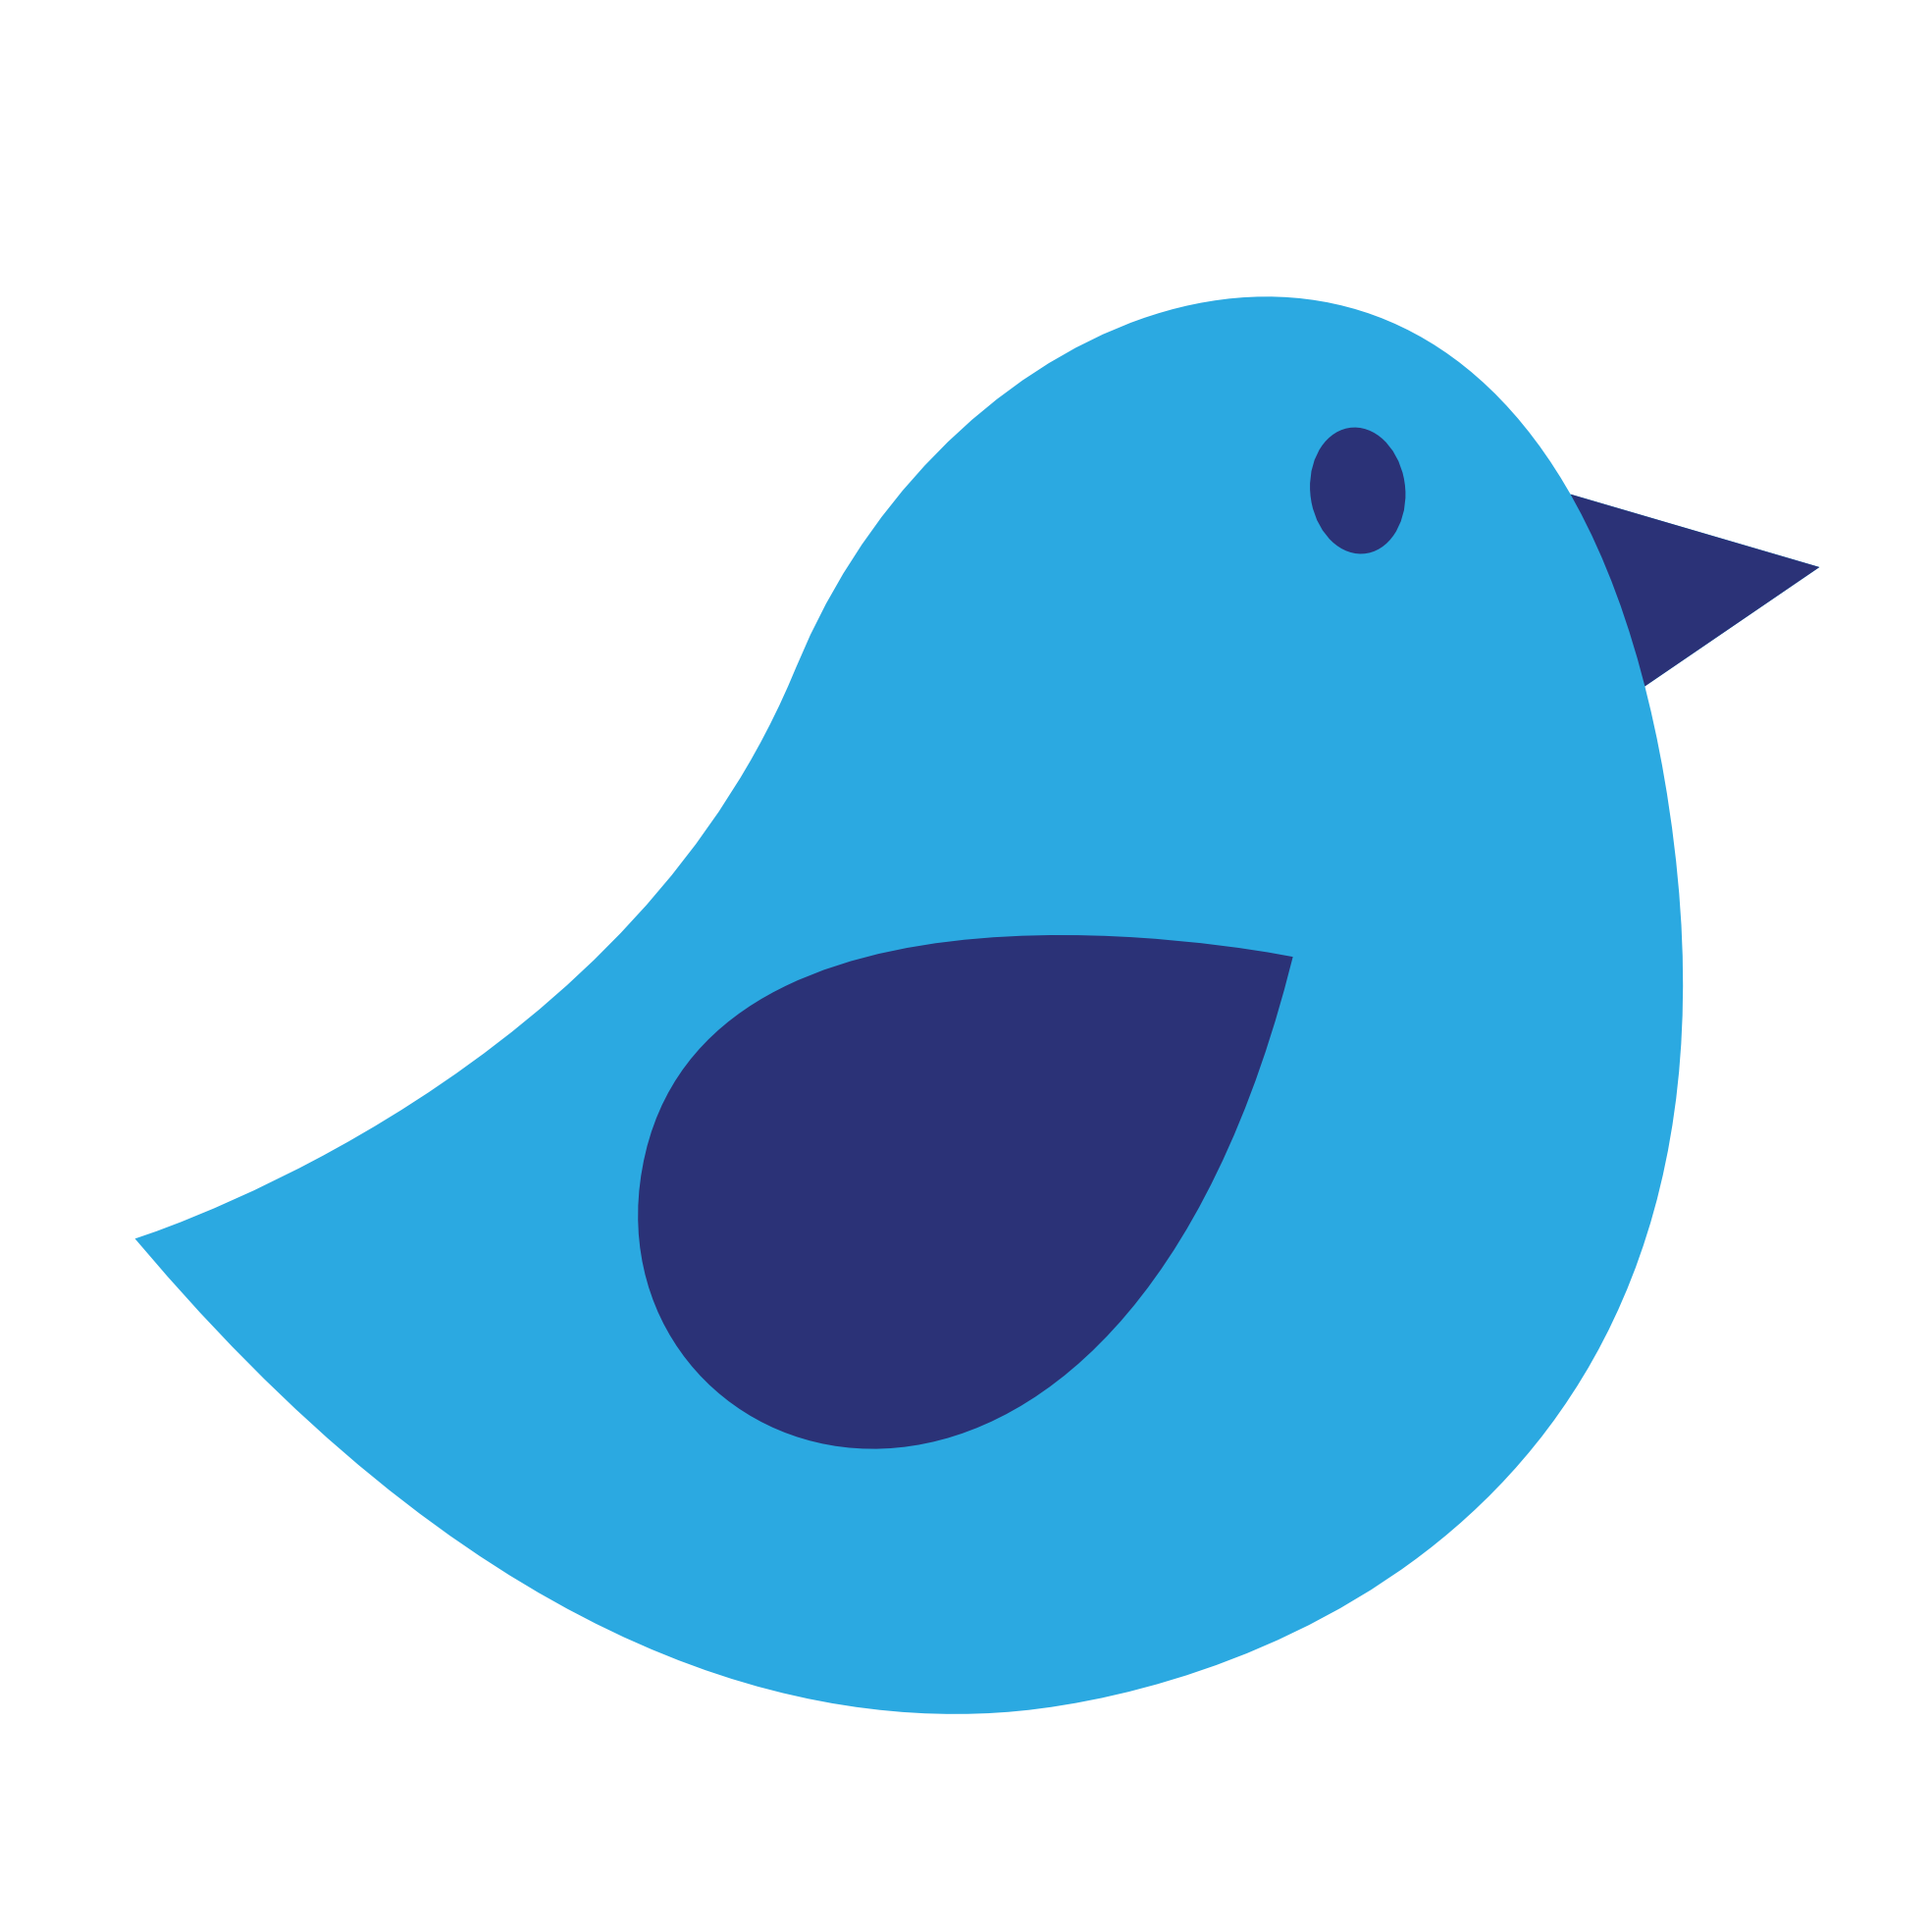 Bird . Painting clipart simple